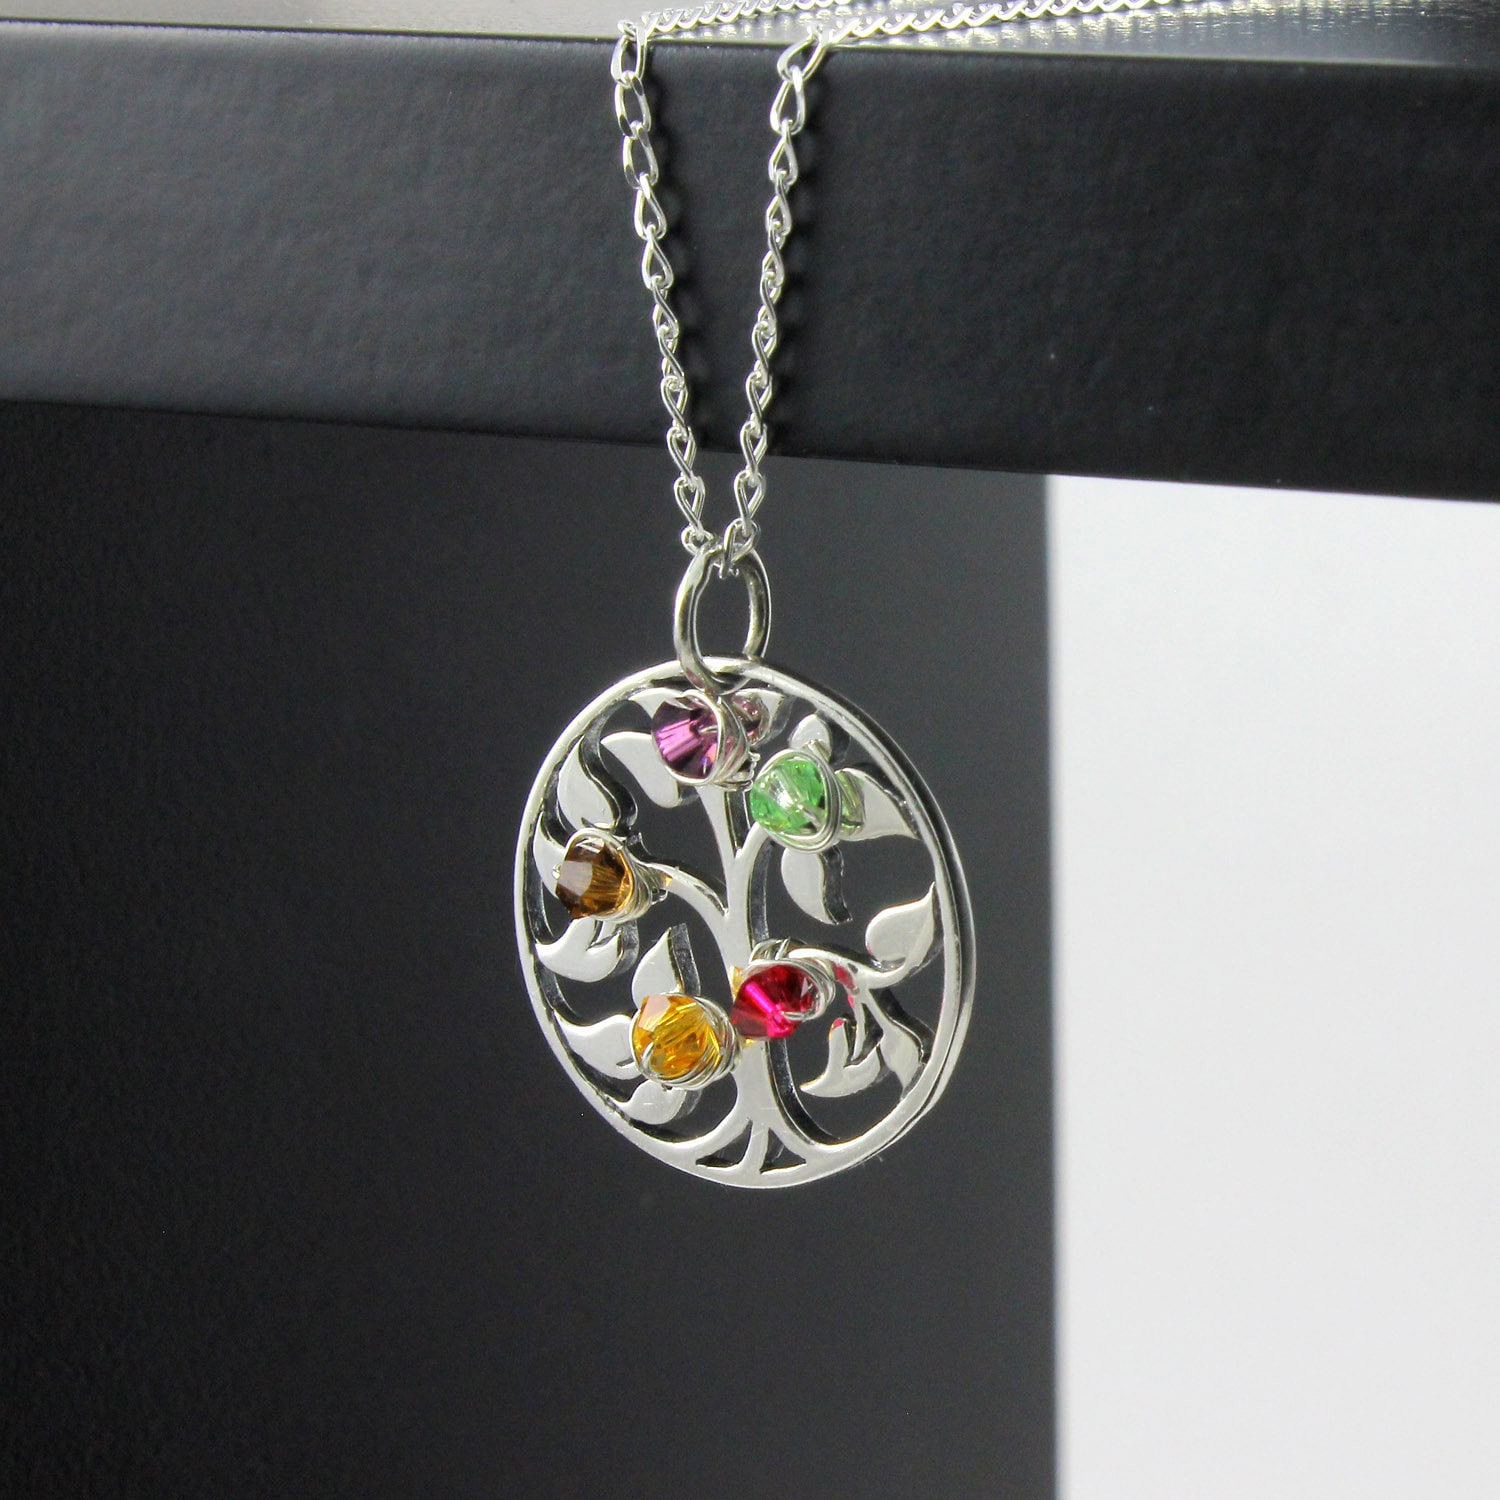 crystals and with of clear life pendant pammyj verse inspirational tree family products silvertone